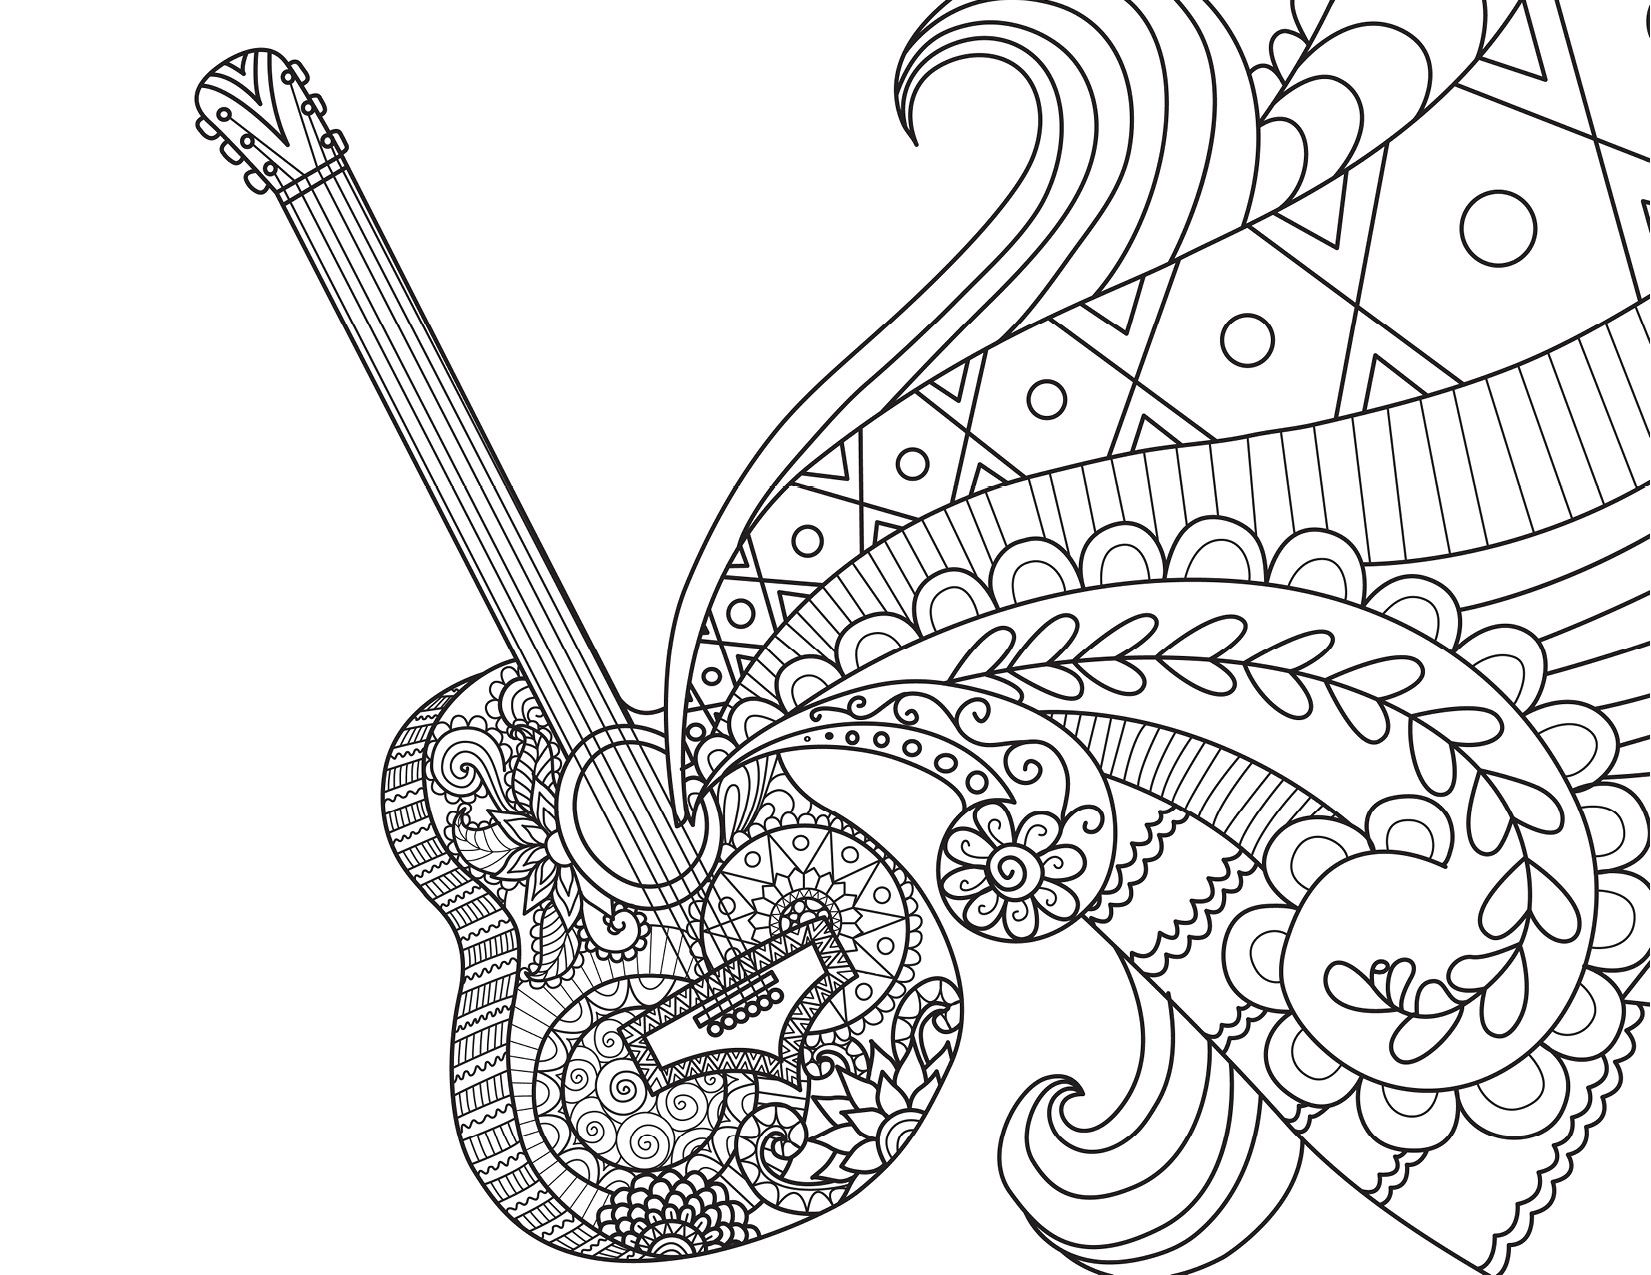 Pin on Coloriage pour adulte gratuit - Free adult coloring pages